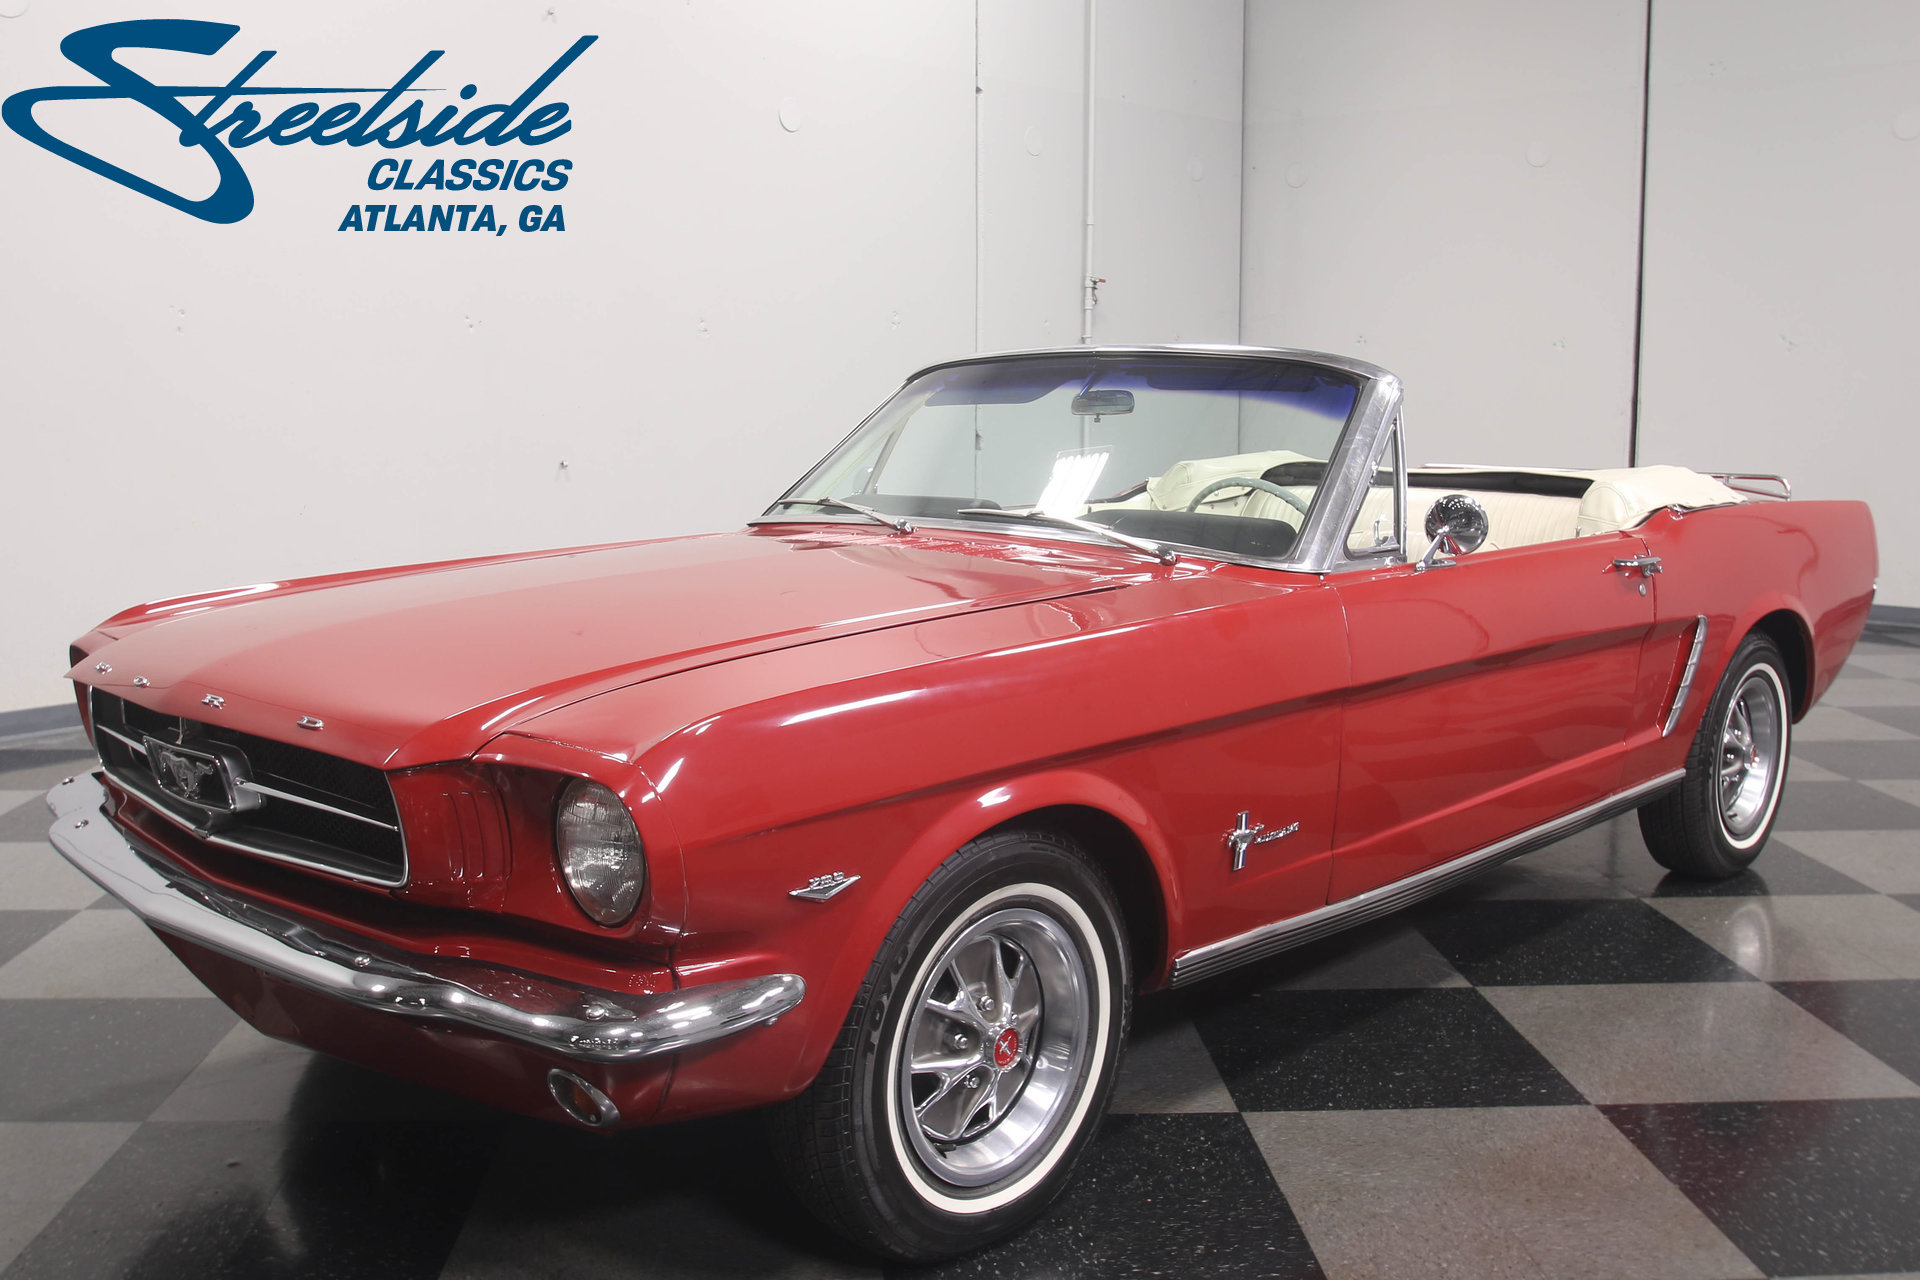 1965 Ford Mustang Convertible: FULLY RESTORED DROPTOP, 289 V8, AUTO, PWR STEERING, PWR TOP, R134A A/C, CLEAN!!